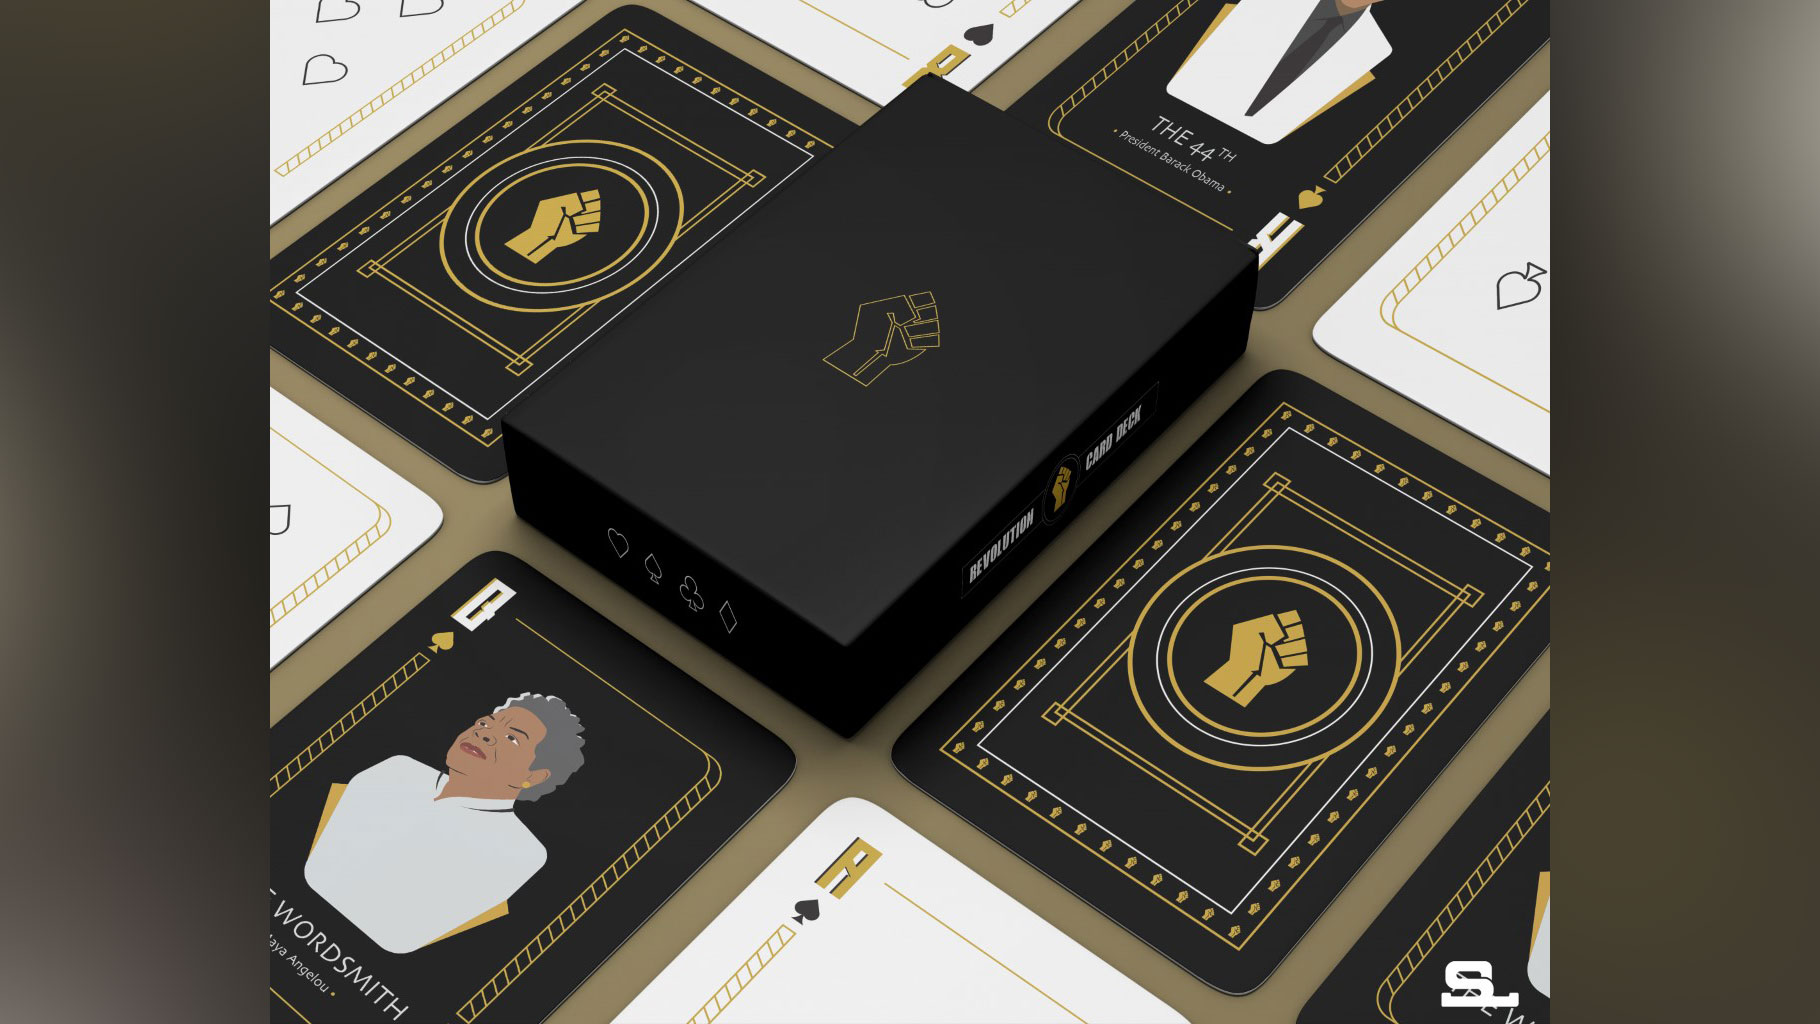 An artist honors icons by creating Black History Month-themed playing cards